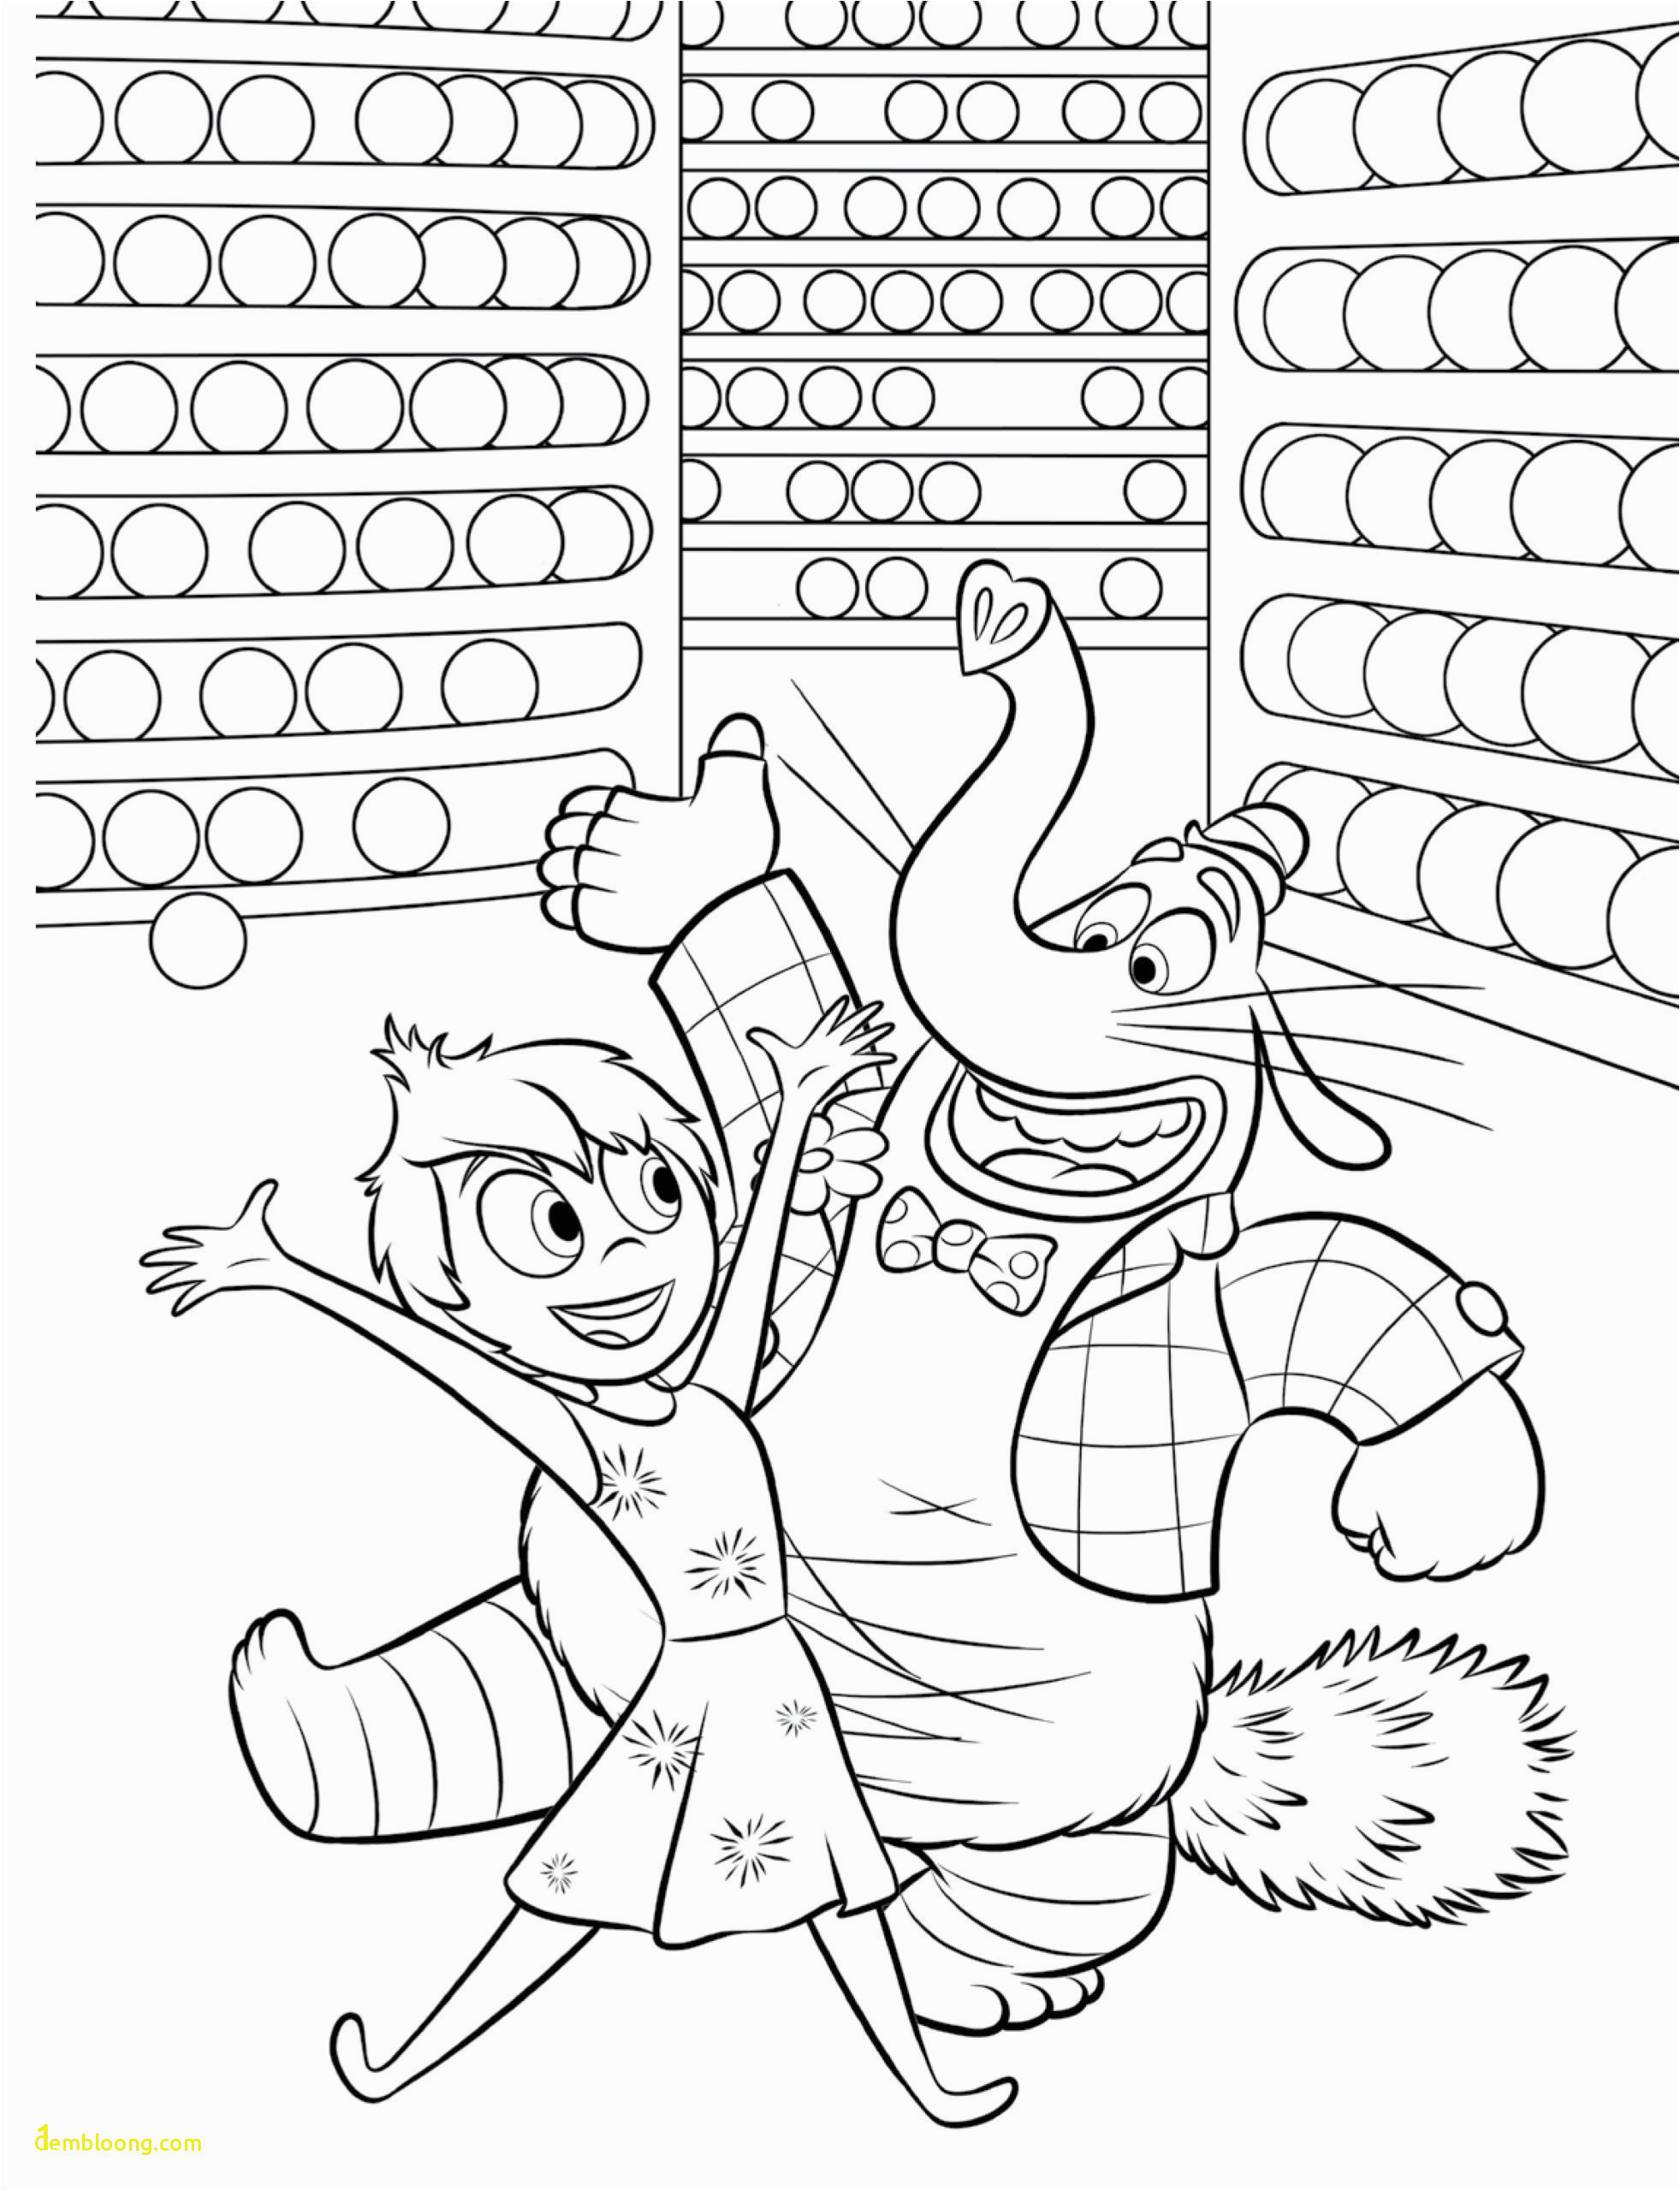 coloring pages for toddlers to print lovely coloring pages free printable color by number for adults of coloring pages for toddlers to print